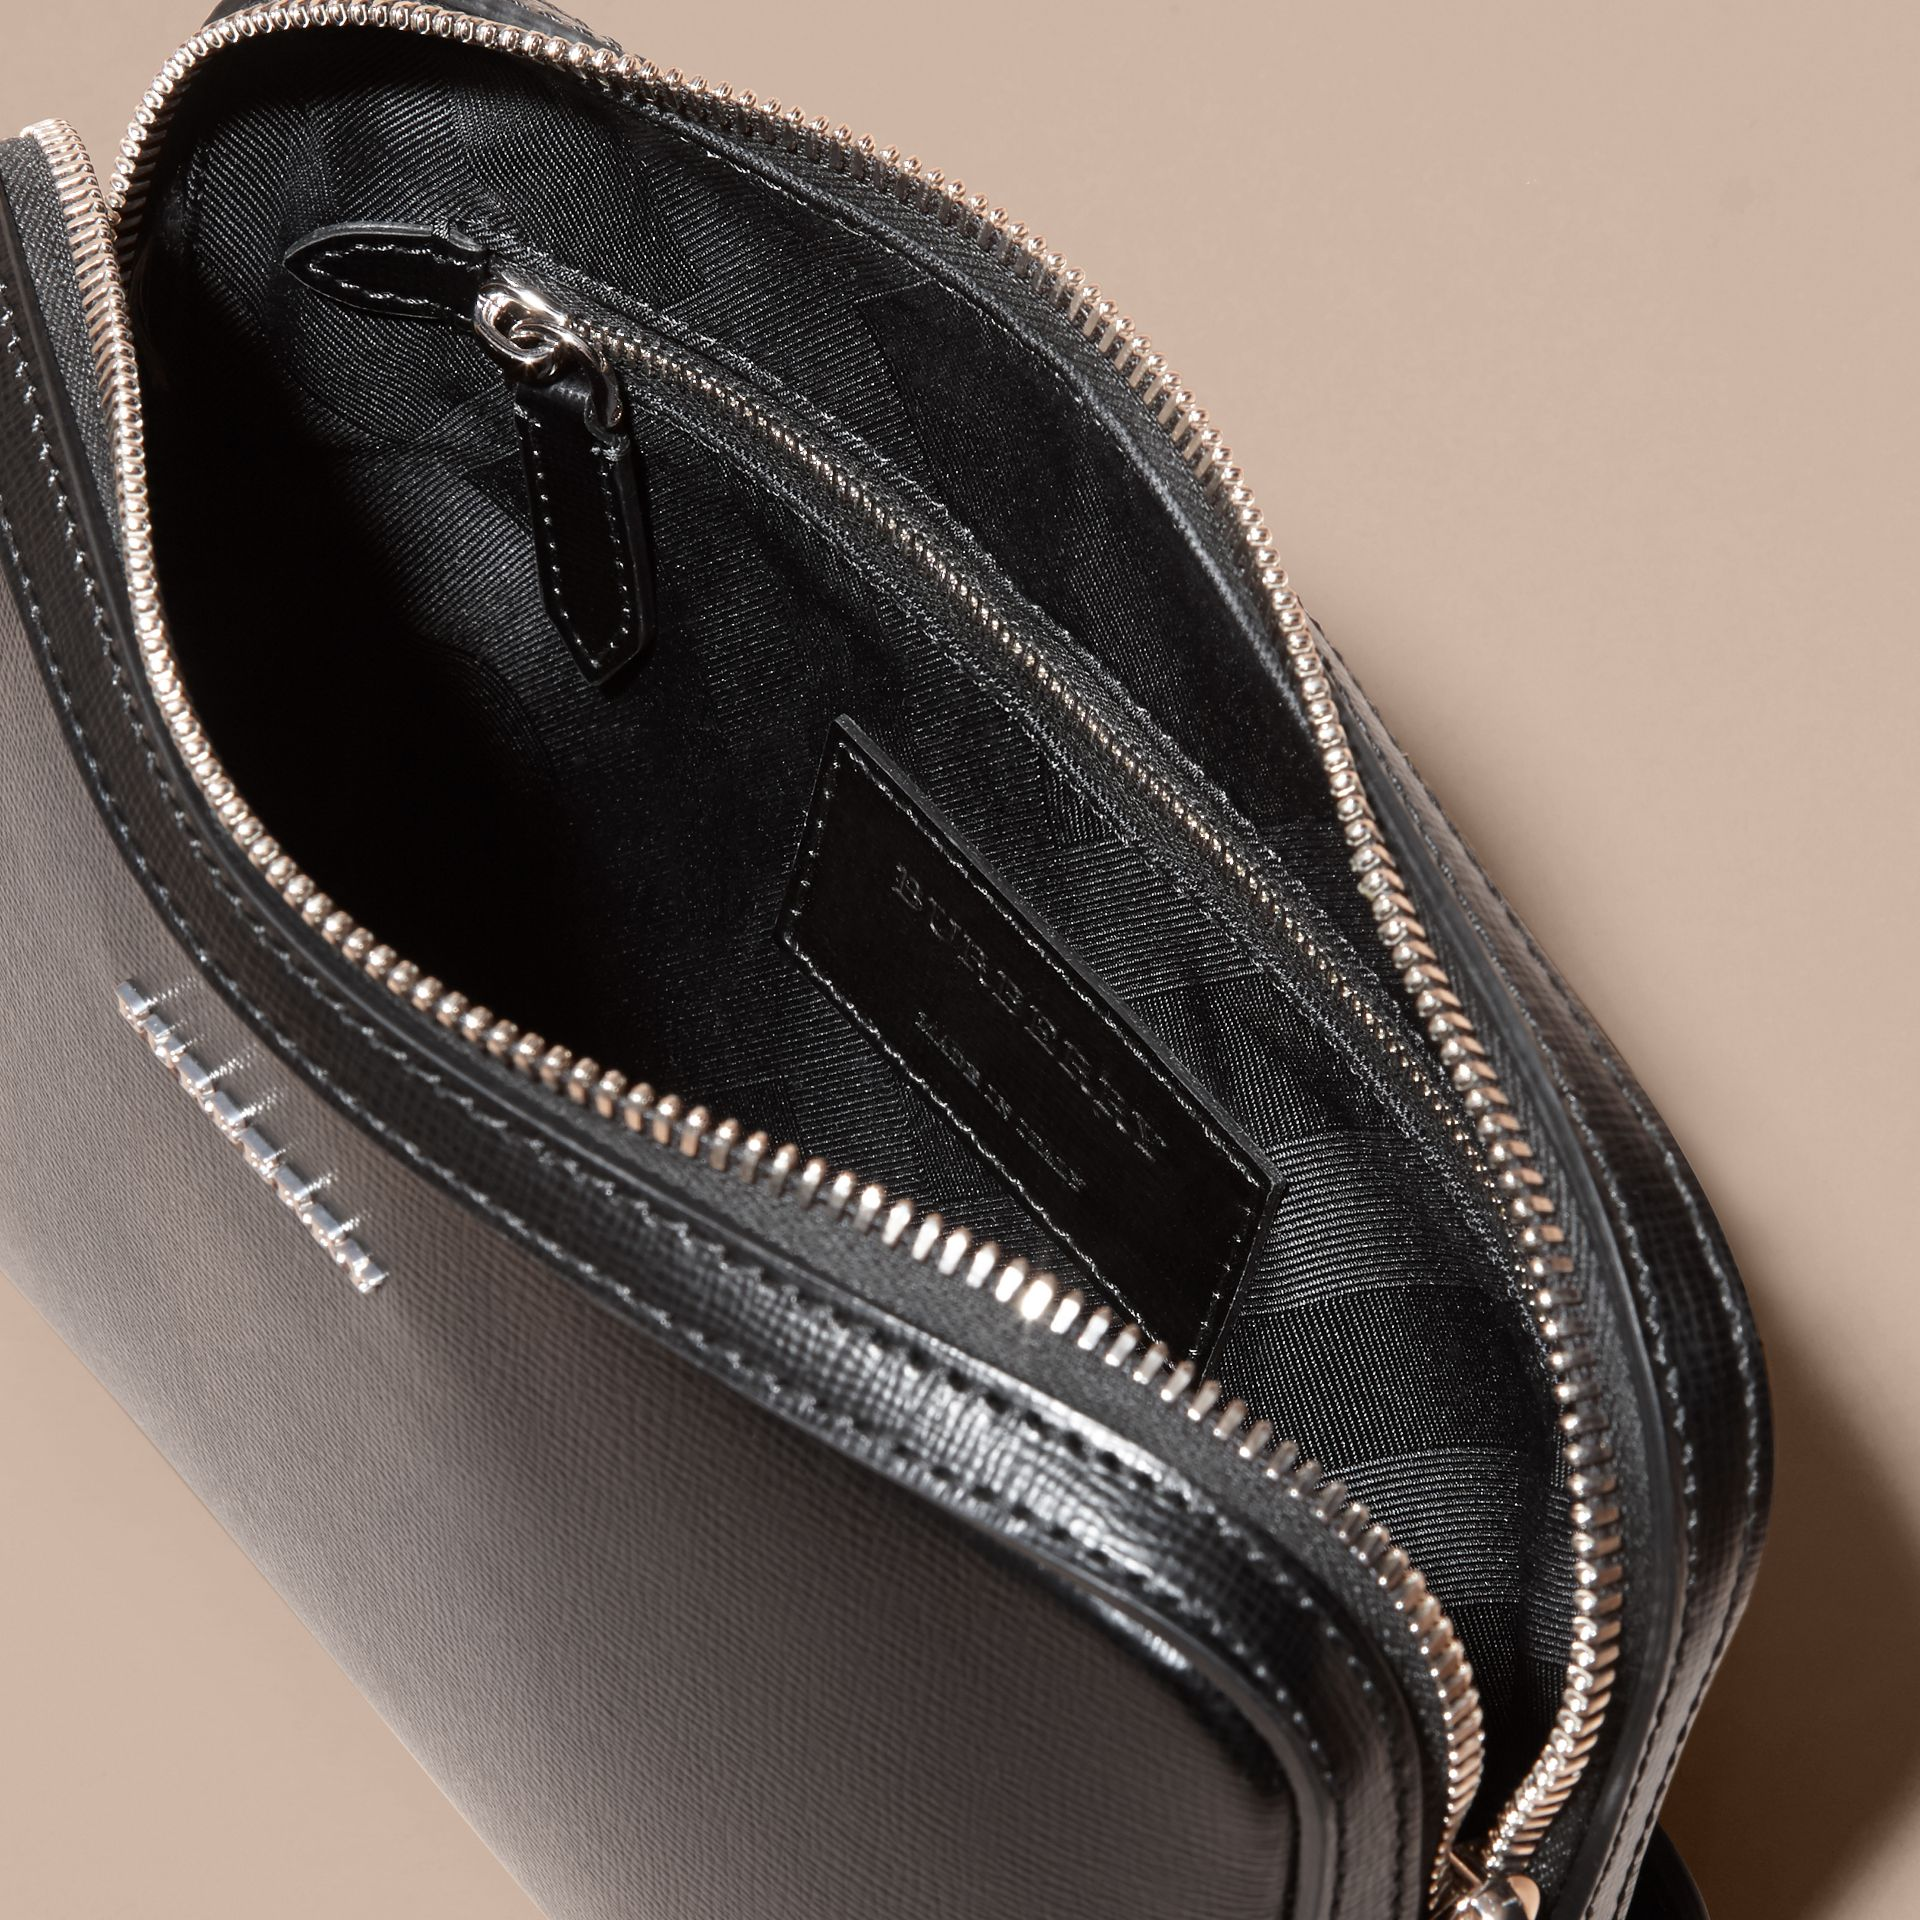 London Leather Pouch in Black - Men | Burberry Canada - gallery image 5